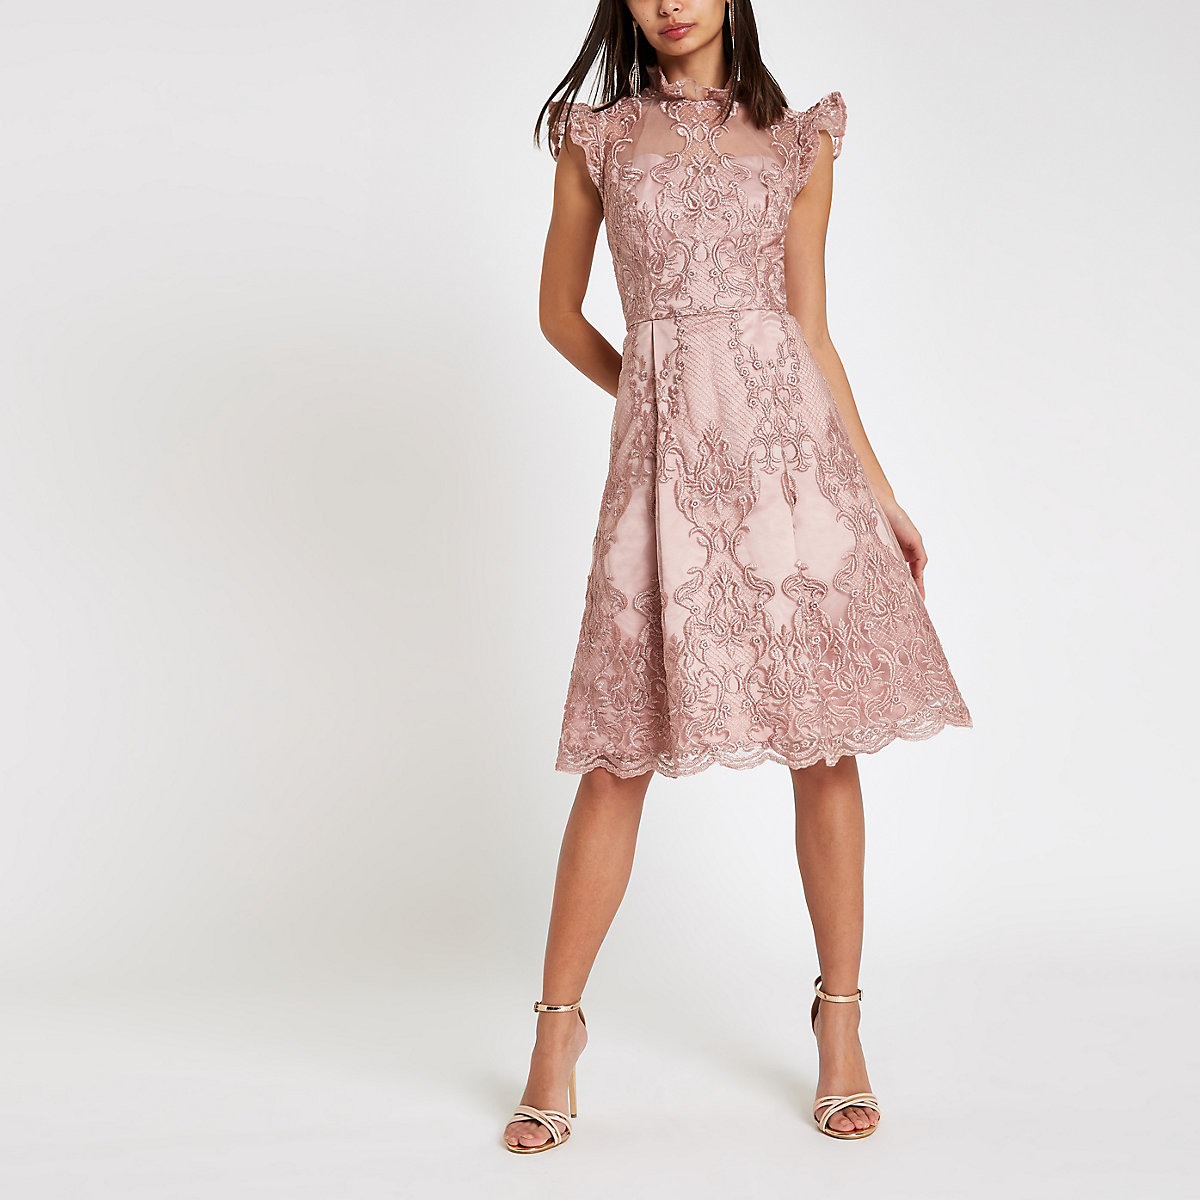 Chi Chi London pink lace flare dress